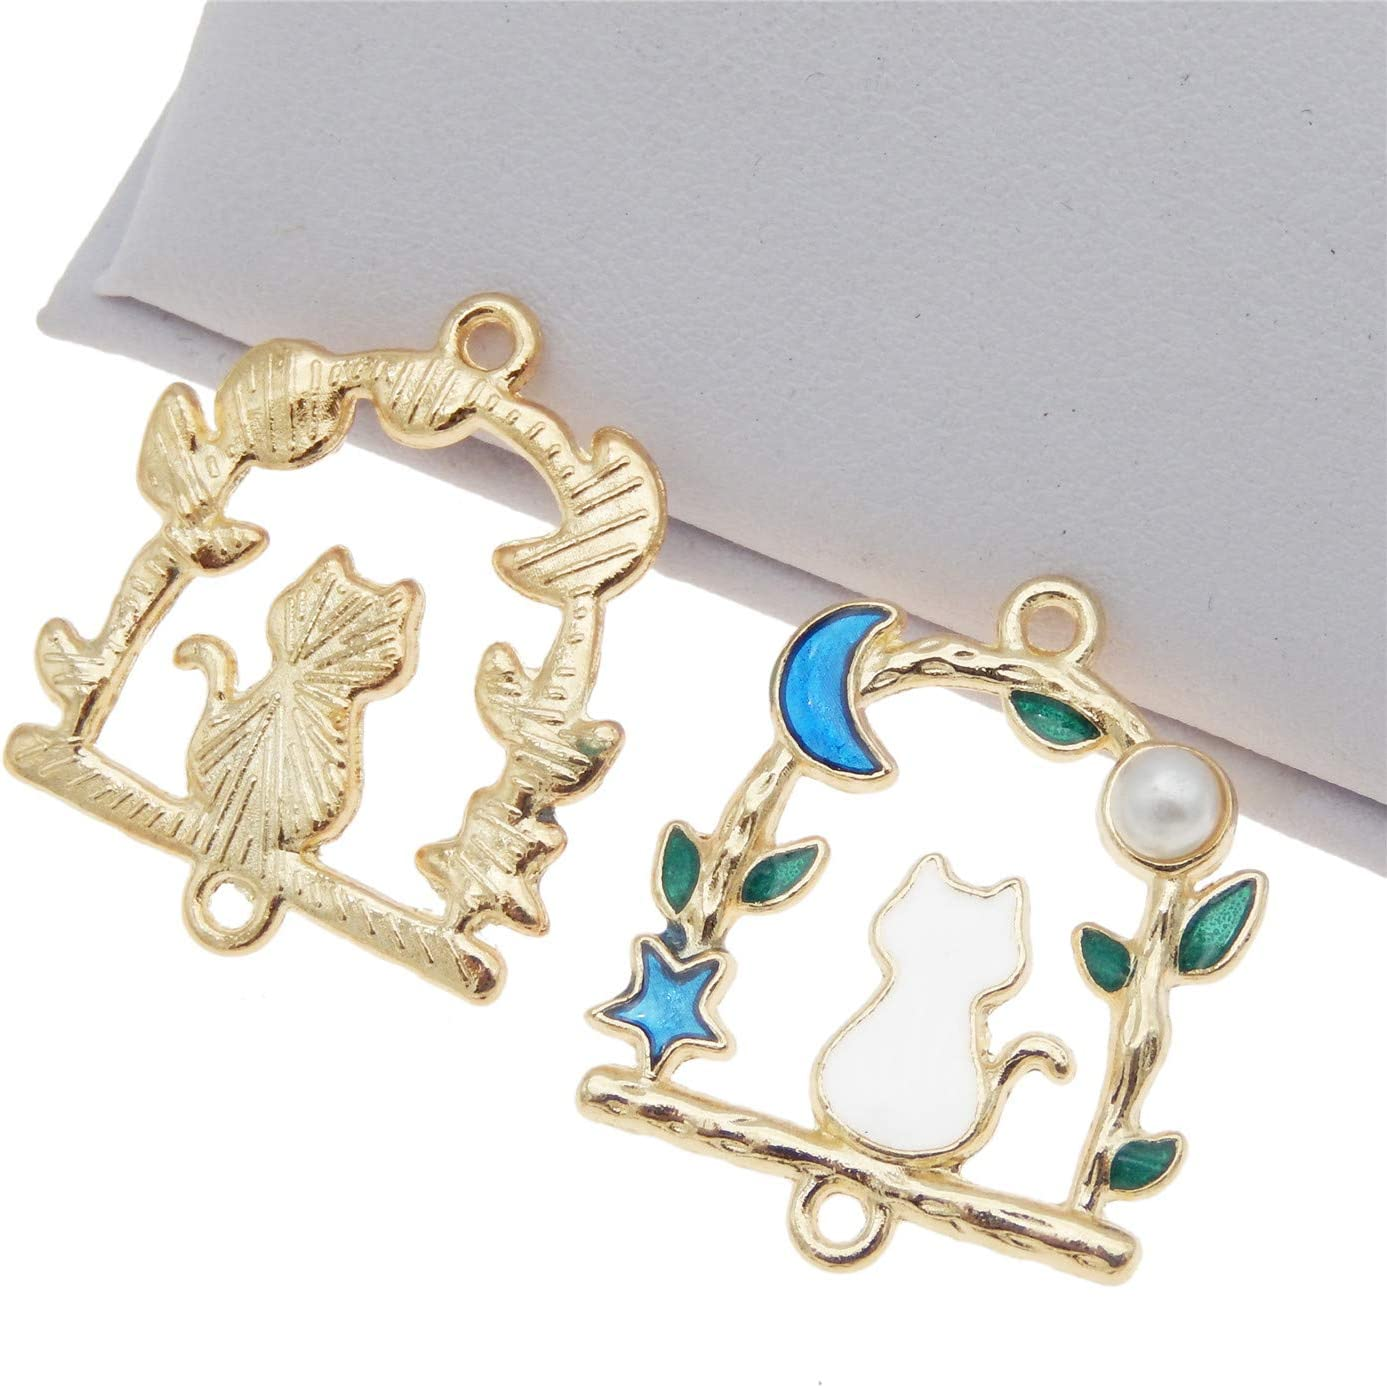 JJG 20pcs Moon Star Cat Enamel Pendants Charms Gold Plated Ornaments for Necklace Bracelet Earring DIY Jewellery Making Supplies